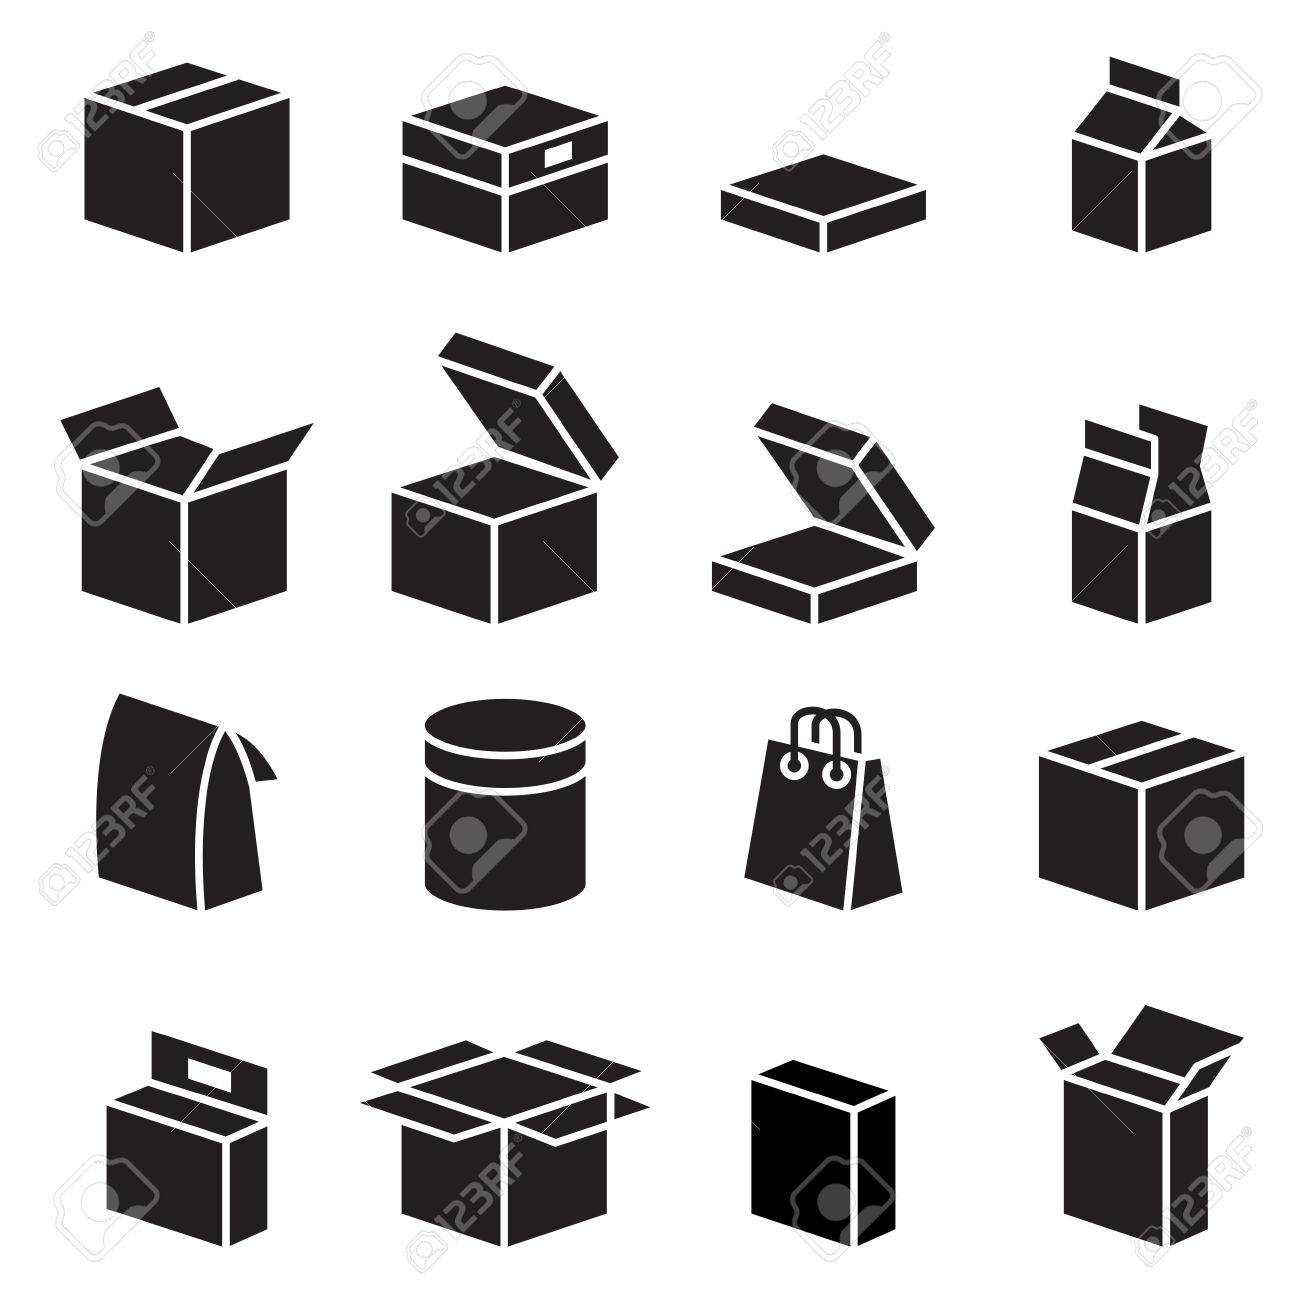 Silhouette box packaging icon - 52045363